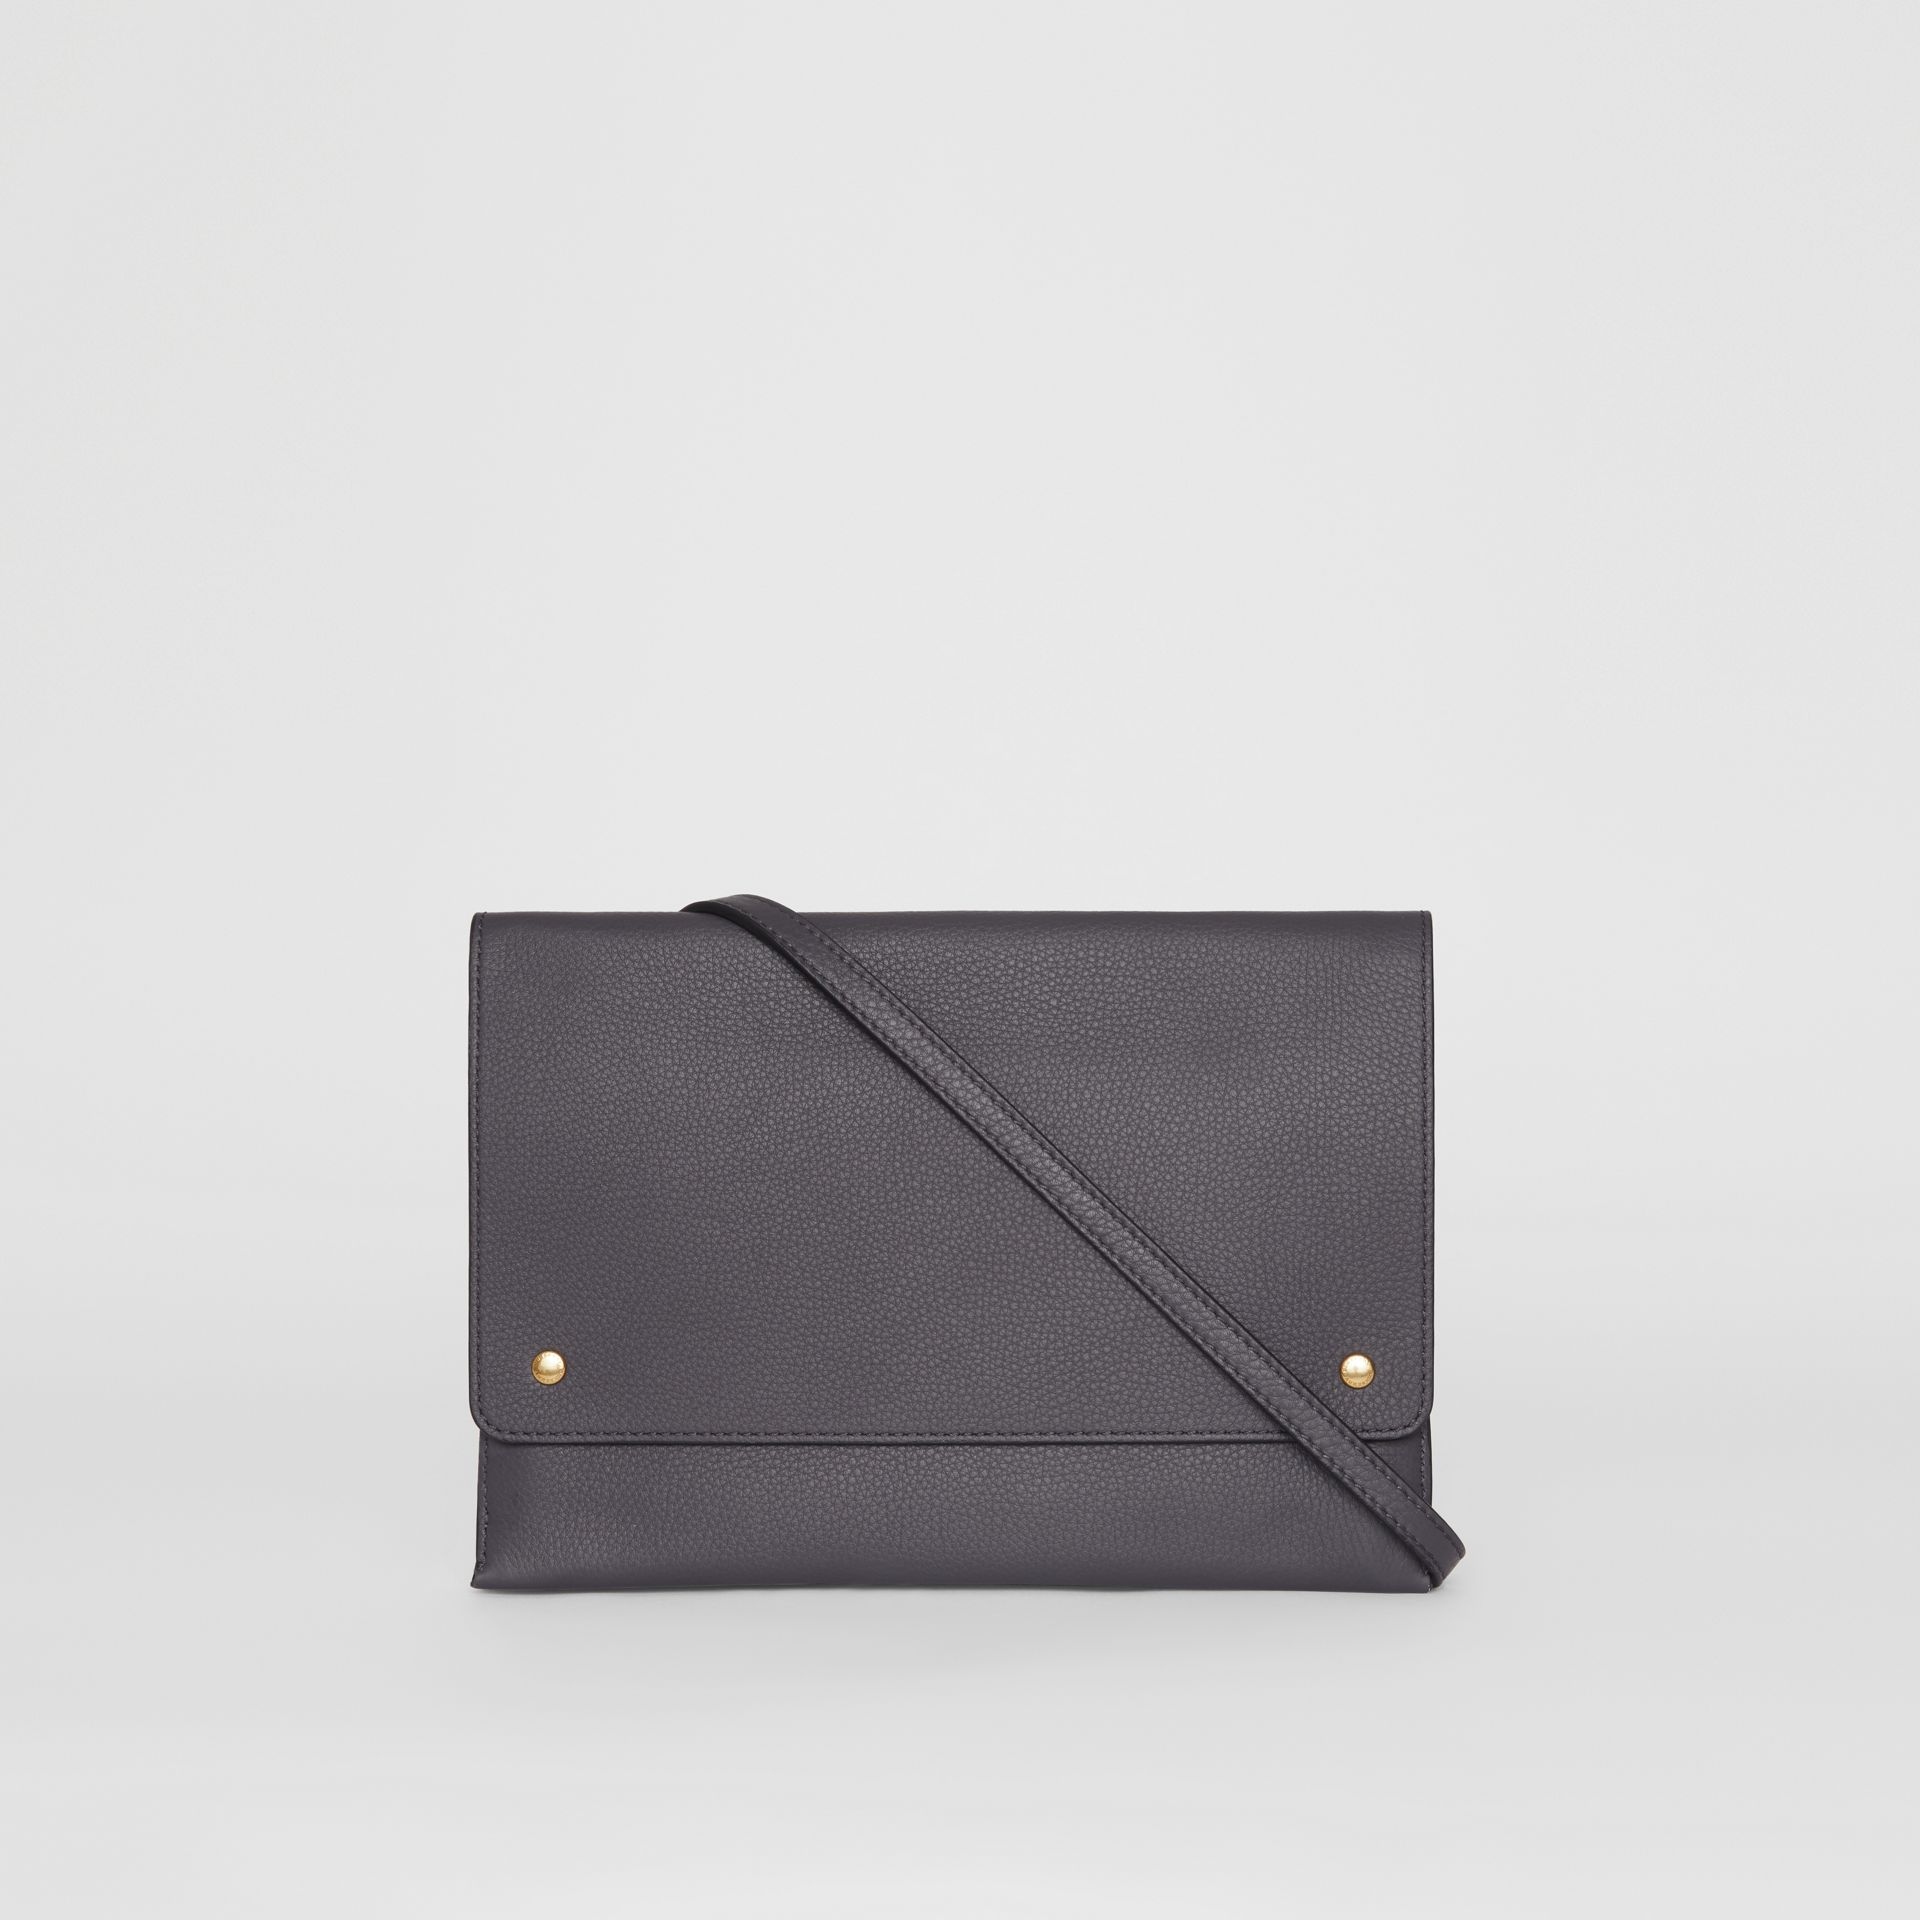 Leather Envelope Crossbody Bag in Charcoal Grey - Women | Burberry United Kingdom - gallery image 5